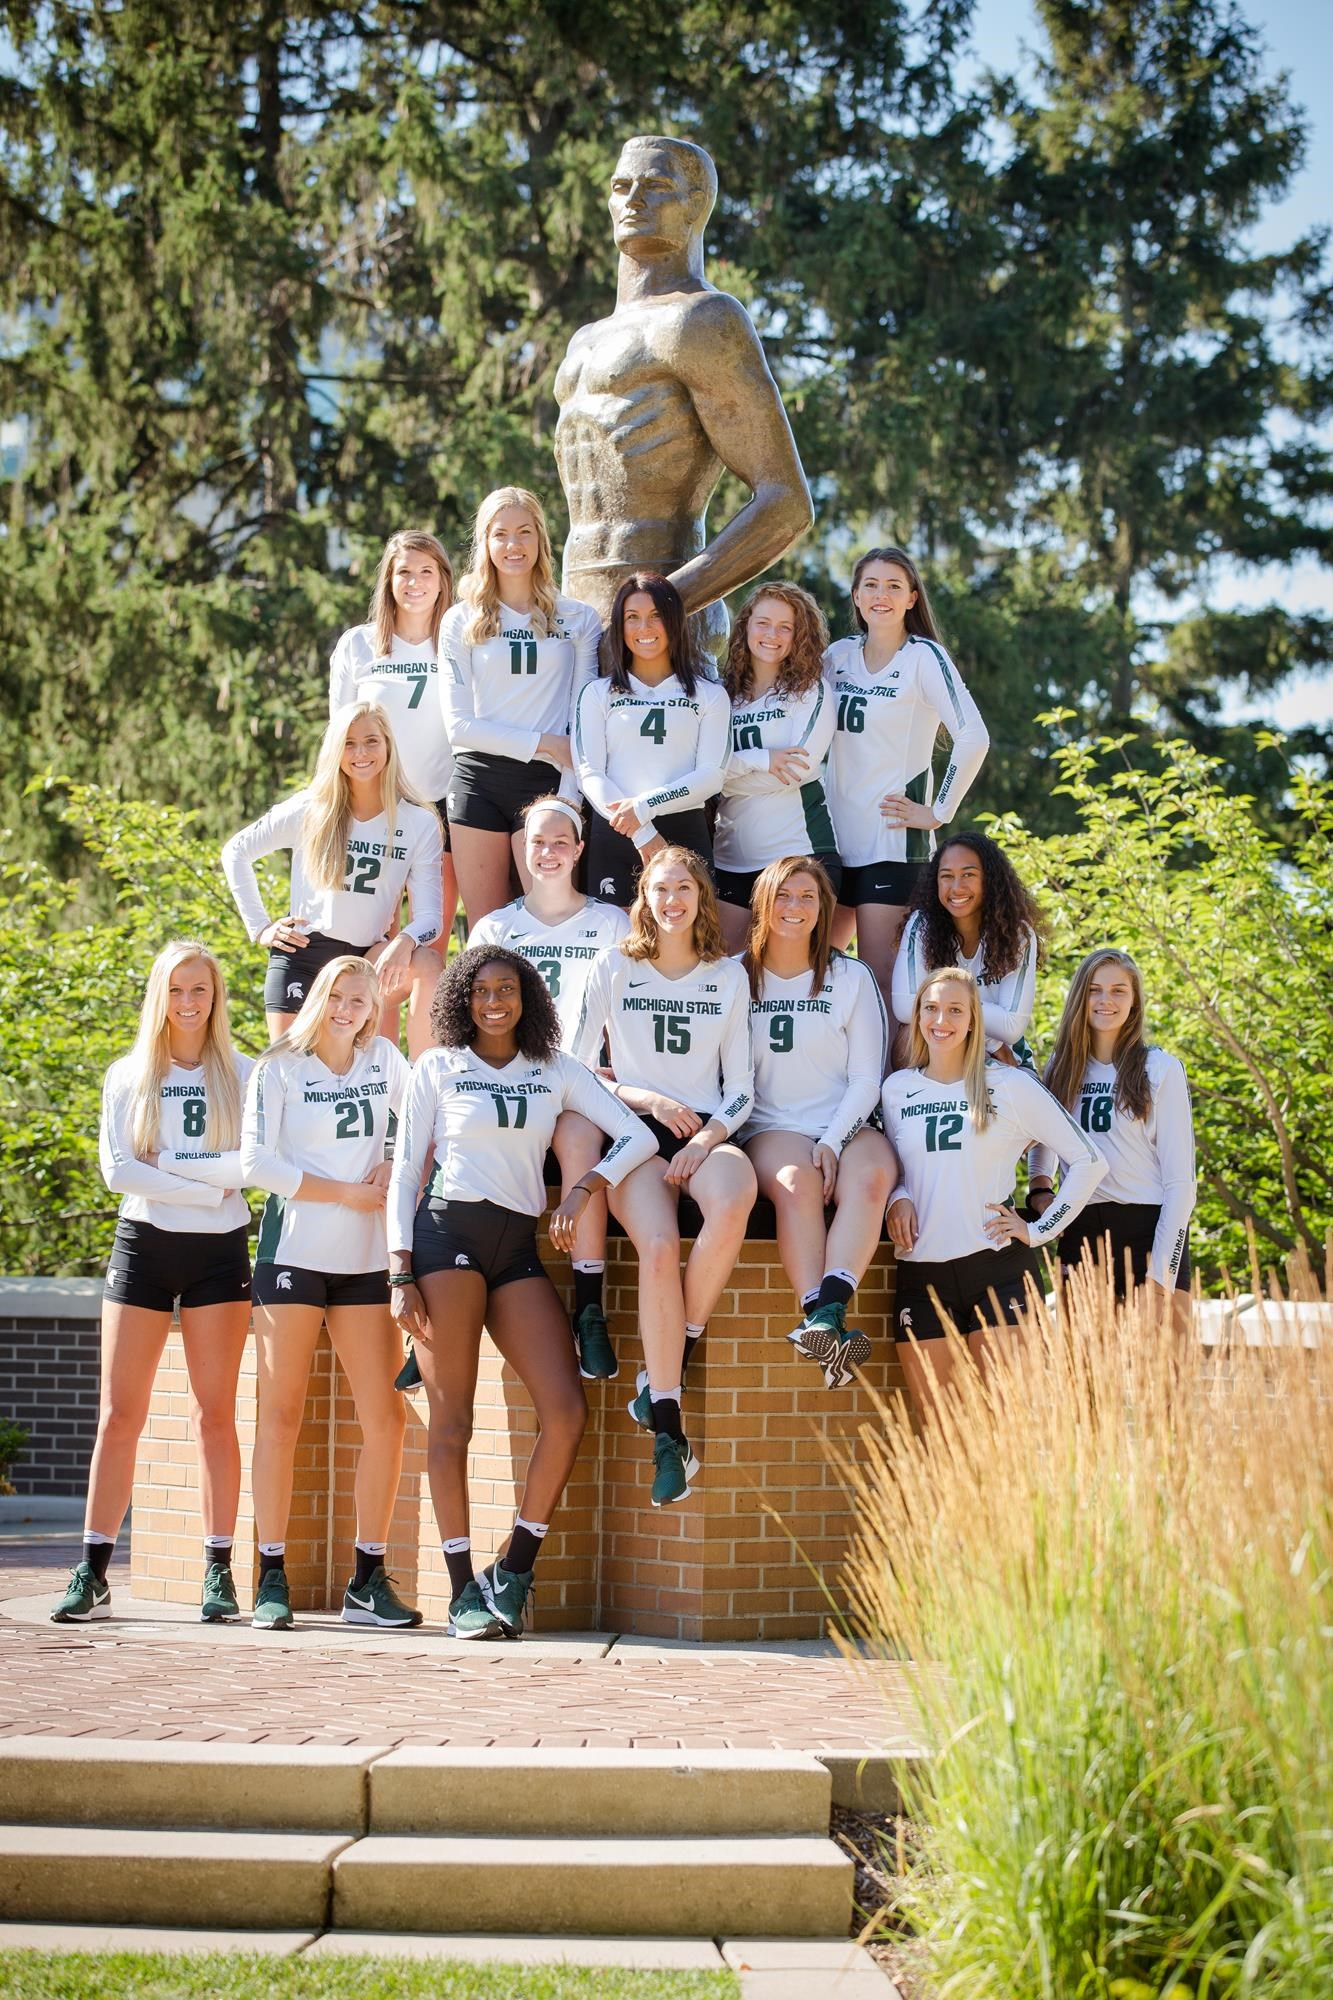 2018 Volleyball Roster Michigan State University Athletics